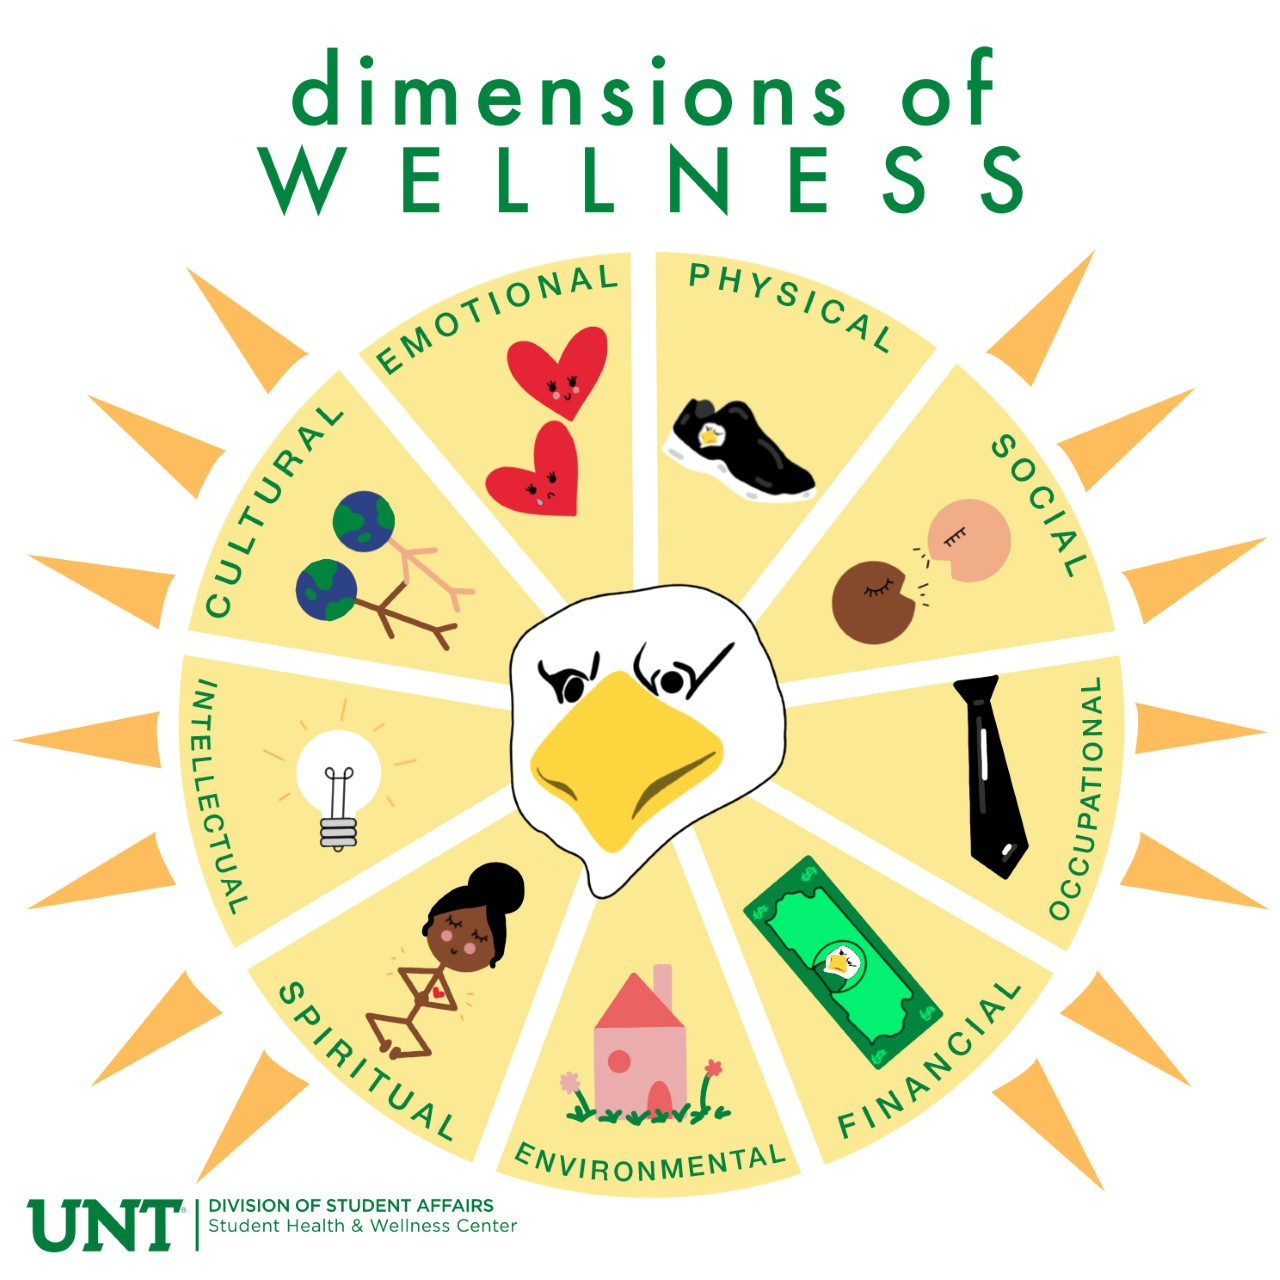 Scrappy's dimensions of wellness: emotional, environmental, intellectual, financial, social, spiritual, occupational, physical, and cultural